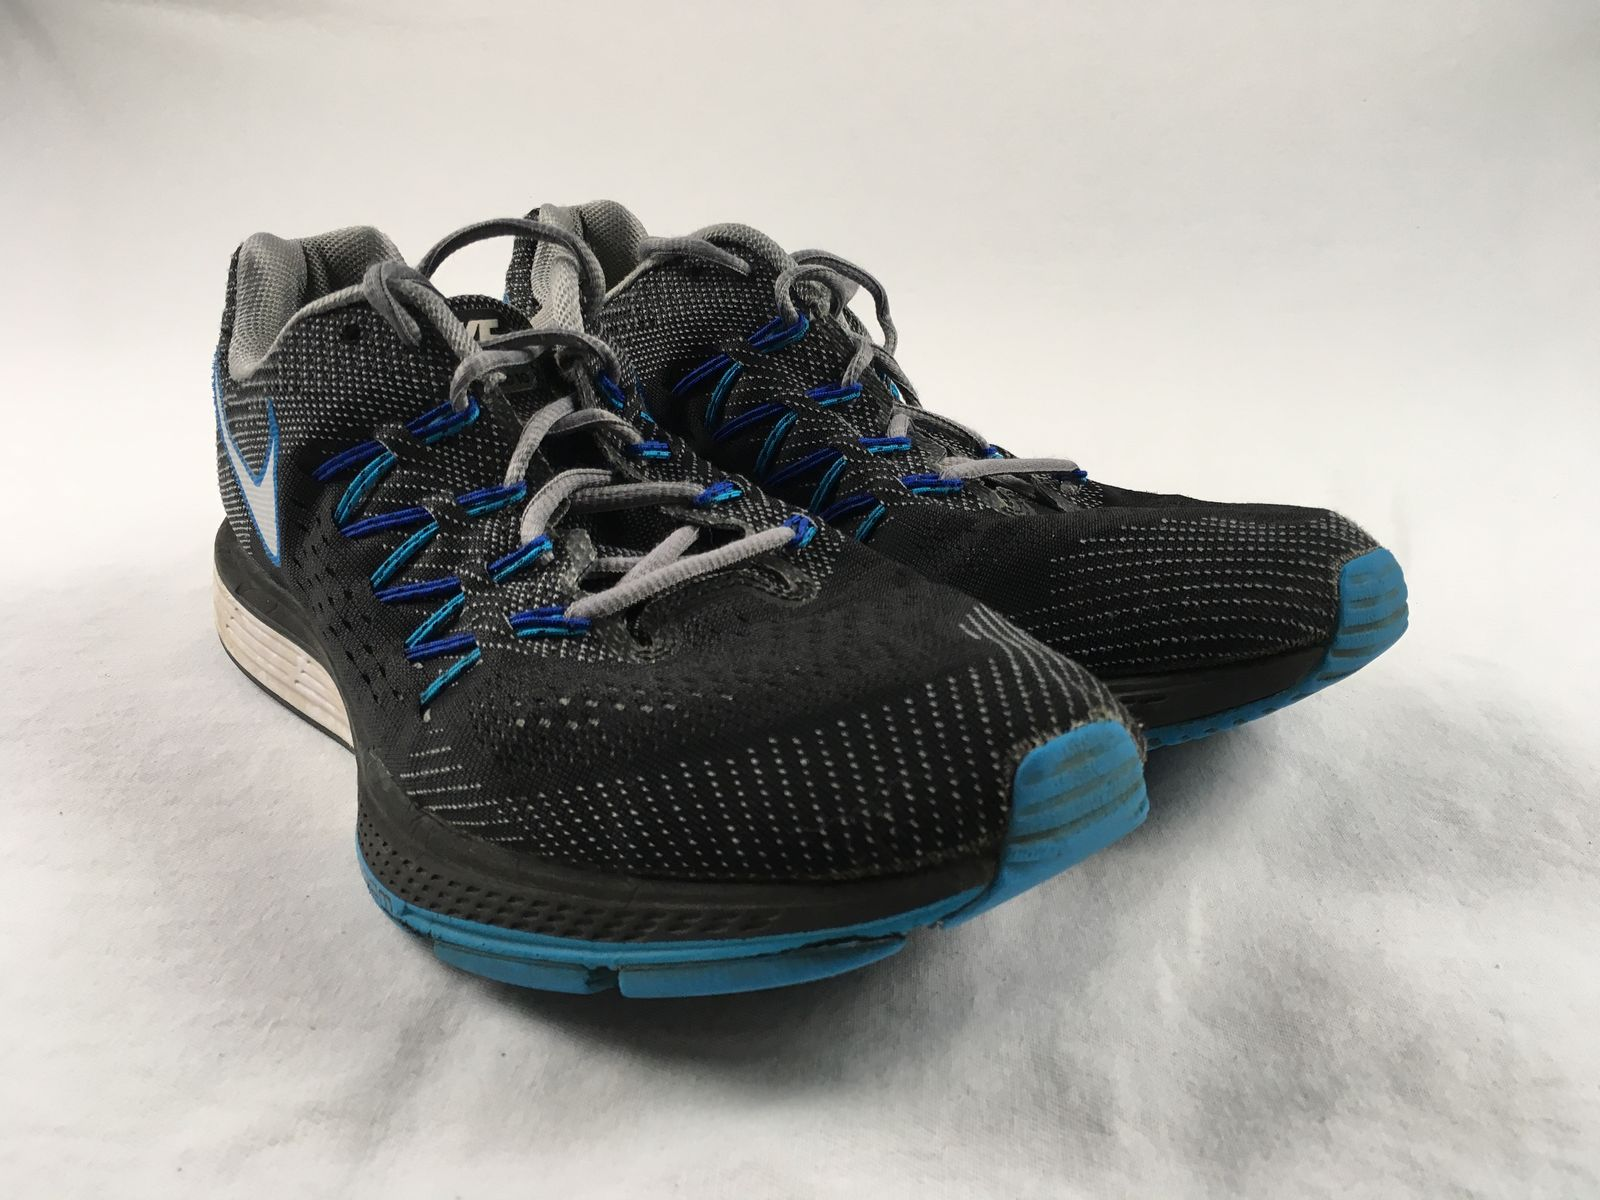 info for d73ed 44ed9 Details about Nike Zoom Vomero 10 - Black Blue Running, Cross Training  (Men s 10) - Used